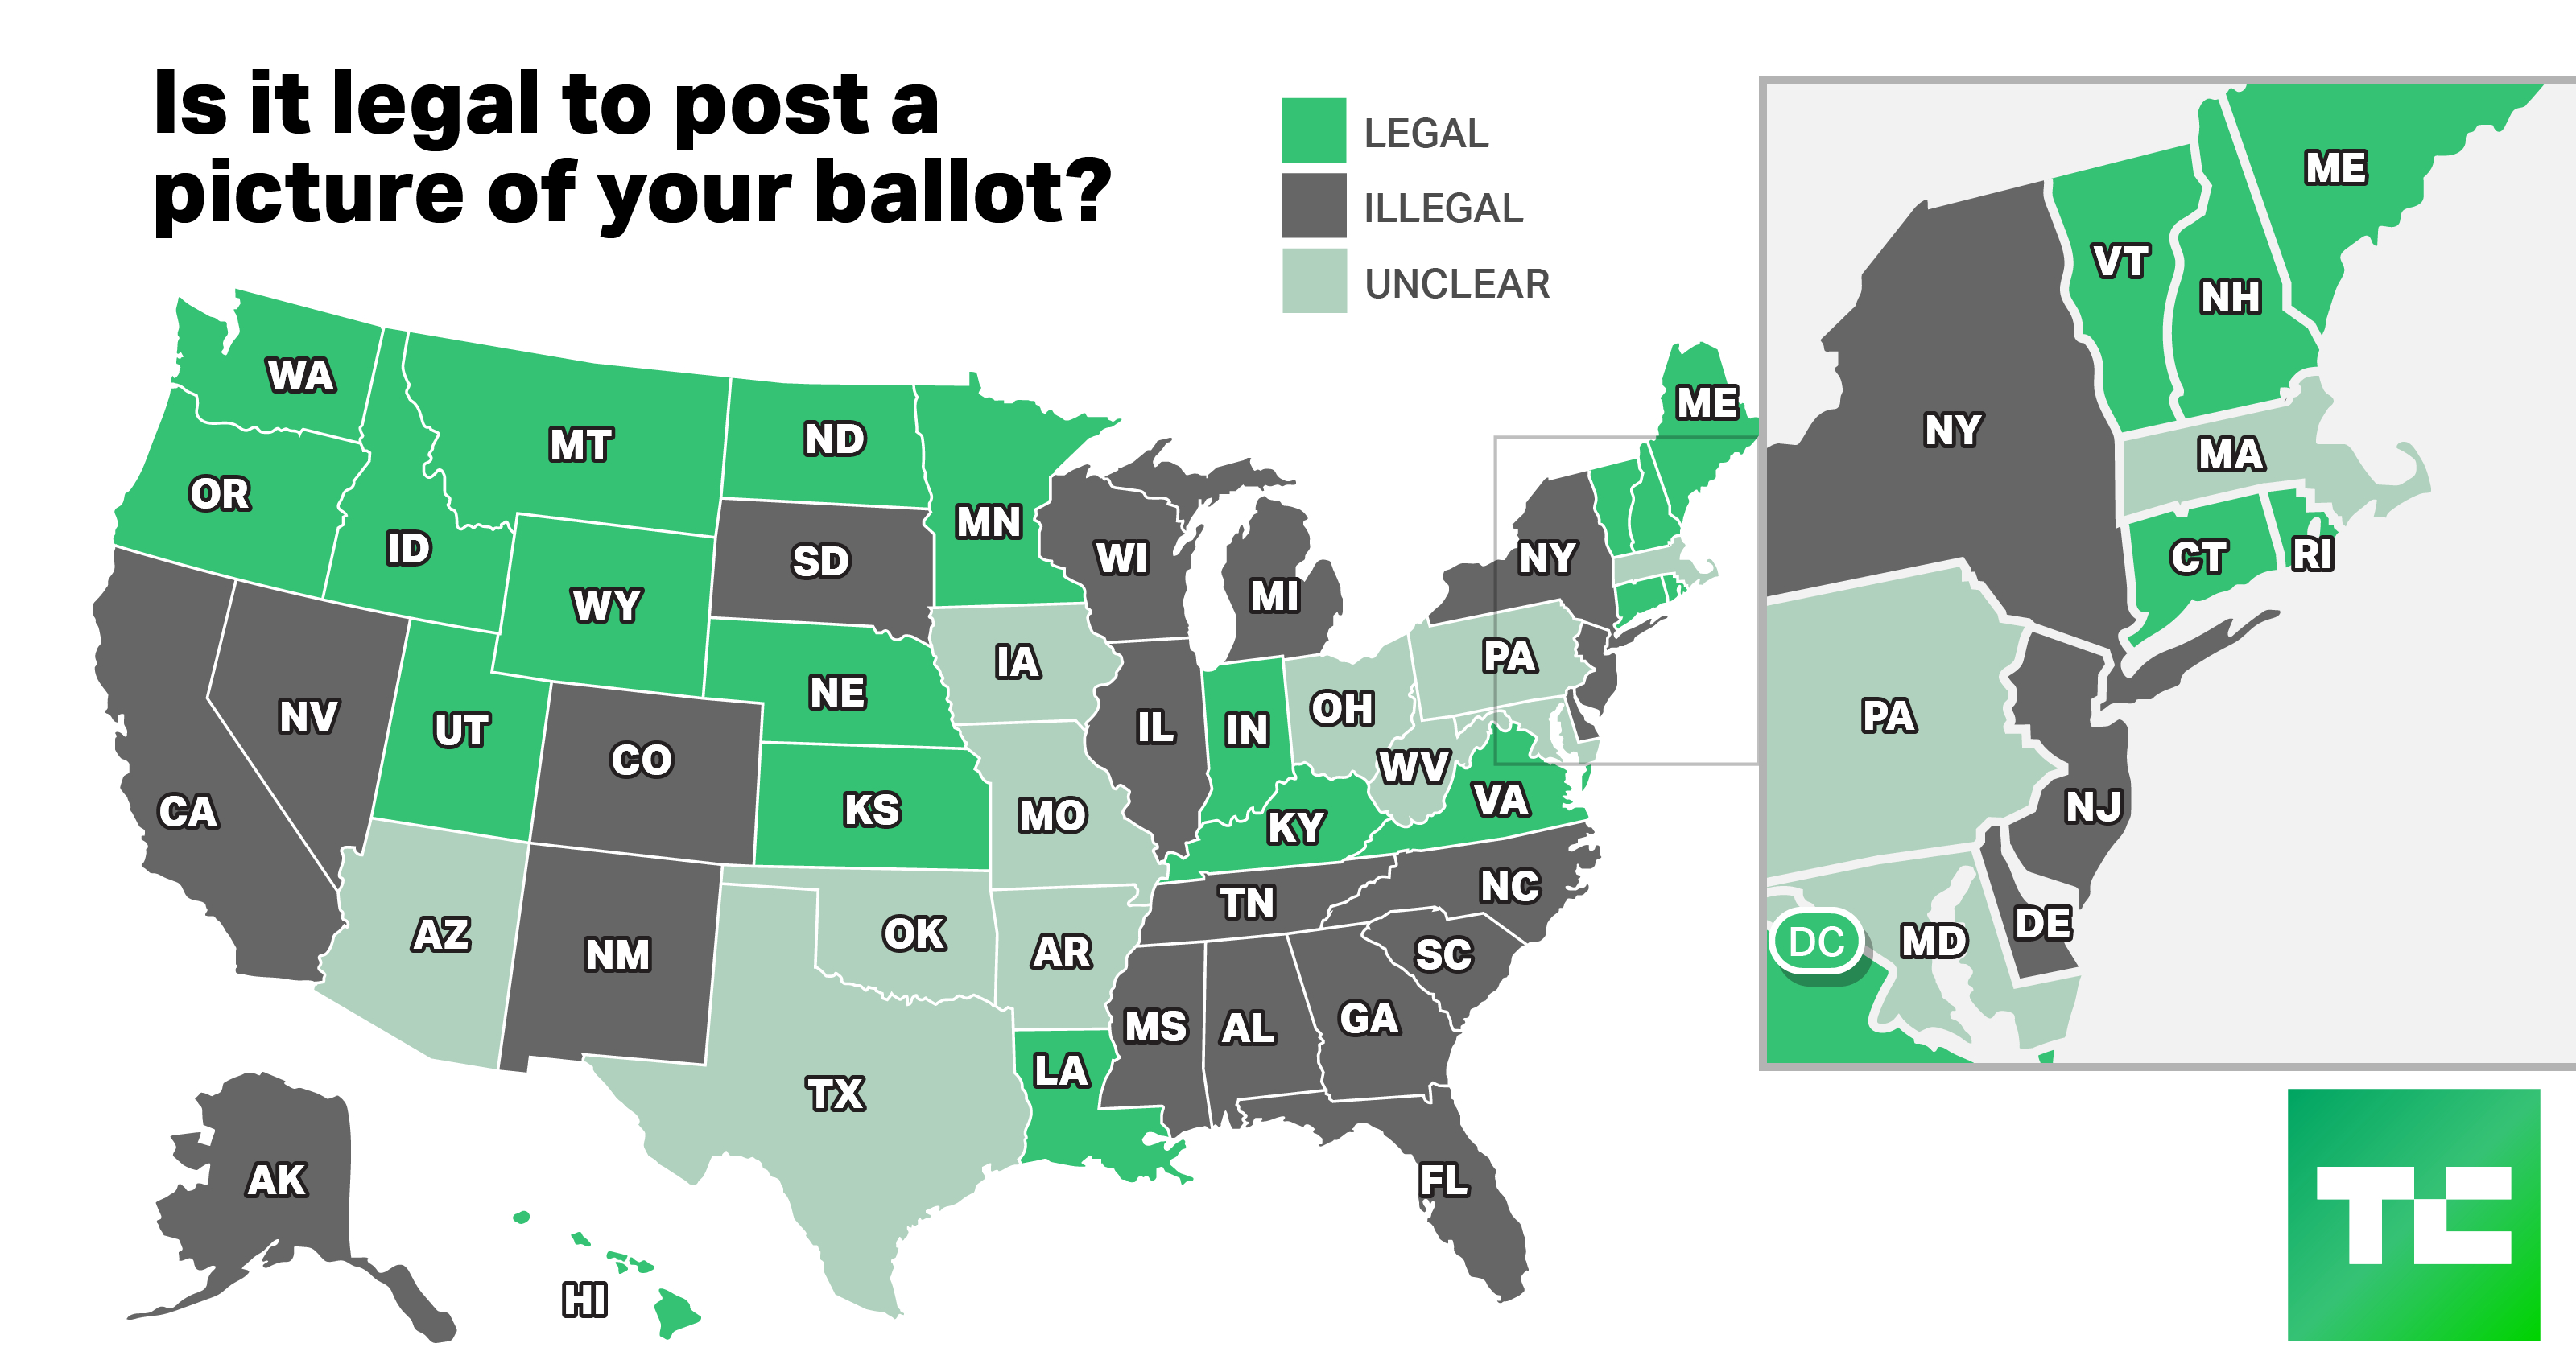 Is It Legal To Post A 'votie' In Your State? Check This Map | Techcrunch - Megan's Law California Map